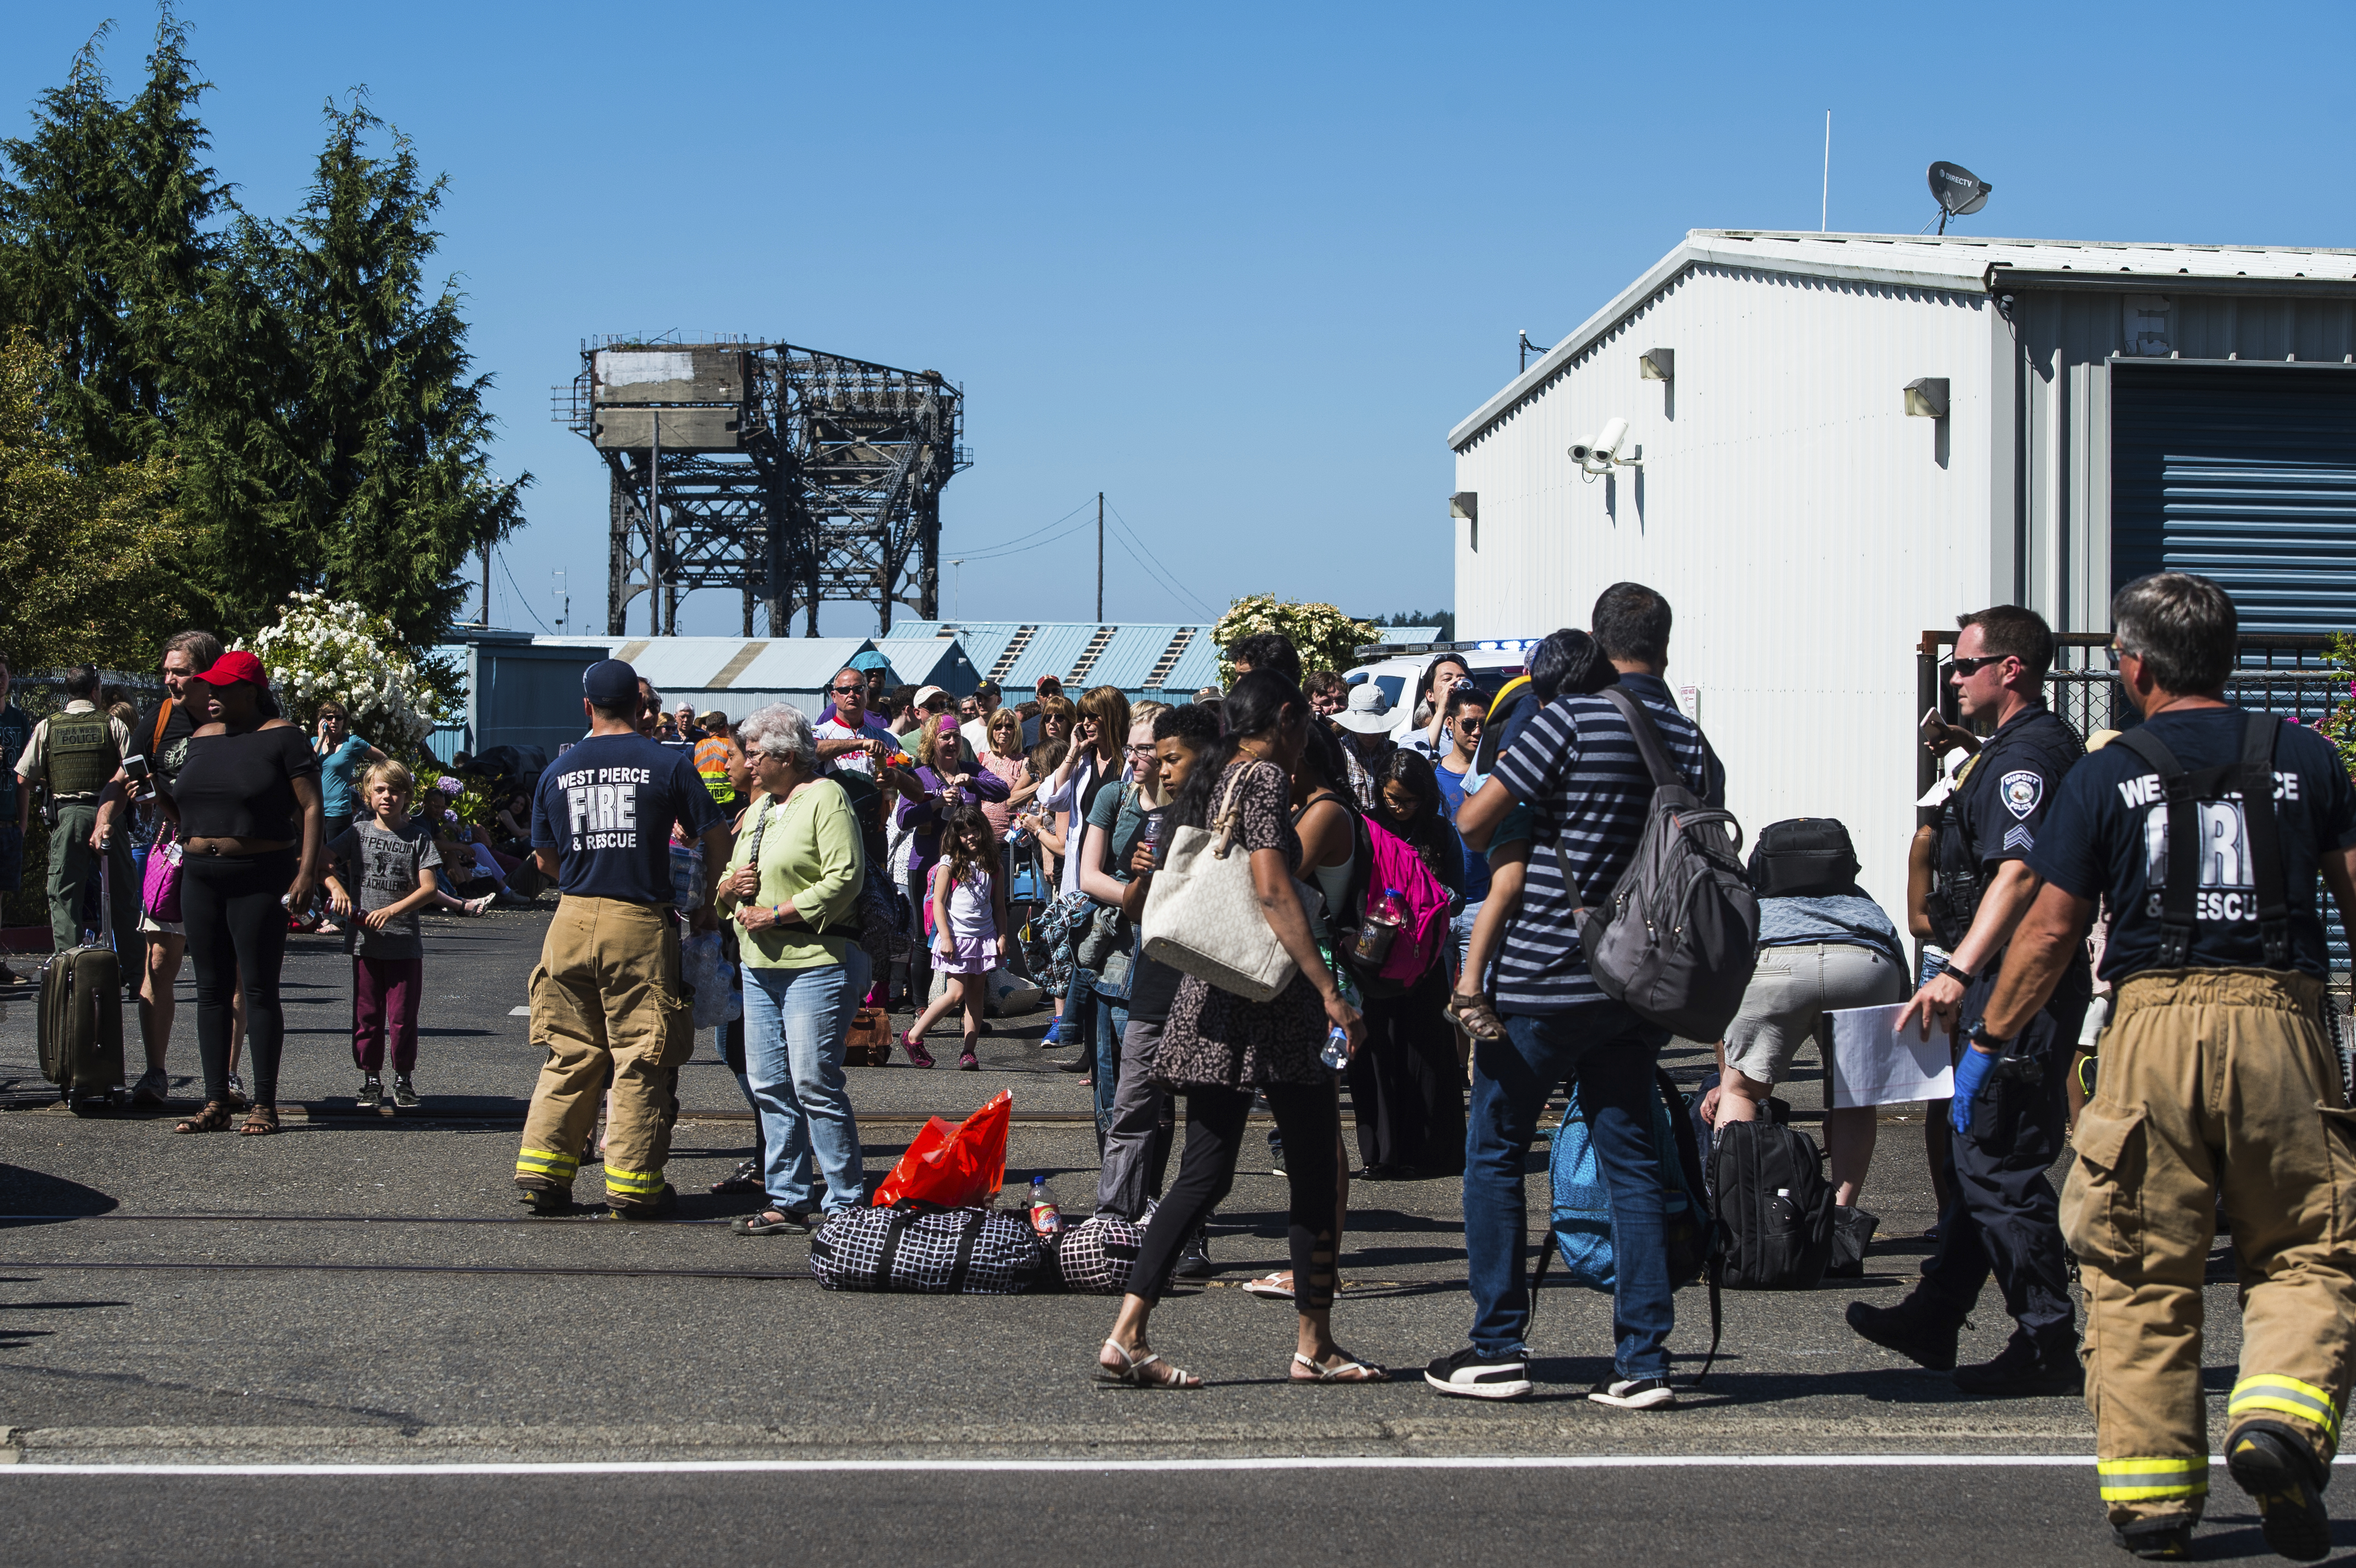 Passengers board busses after a train derailment near Chambers Bay on Sunday, July 2, 2017, in Tacoma, Wash. There appear to be only minor injuries from the waterfront derailment of the Amtrak Cascades train near the town of Steilacoom, the Pierce County Sheriff's Office said on Twitter. The train runs between Vancouver, Canada, and Eugene-Springfield, Oregon. (Joshua Bessex/The News Tribune via AP)